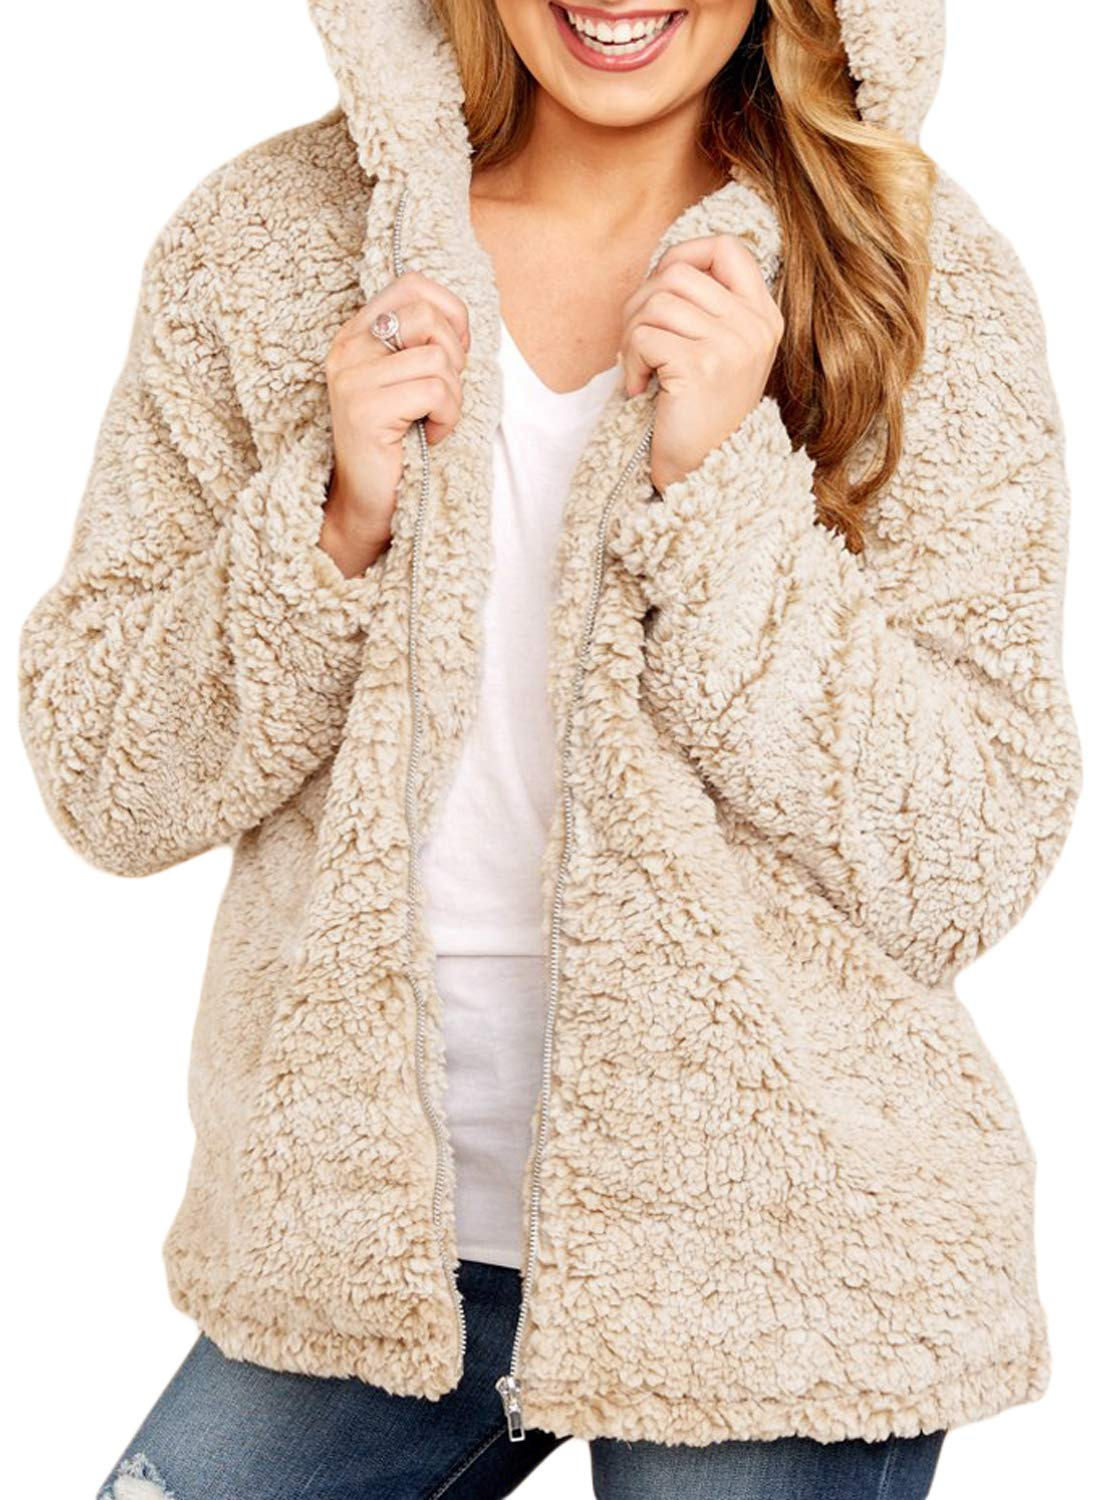 Dokotoo Womens Fuzzy Open Front Hooded Cardigan Jacket Coat Outwear with Pocket WG85111